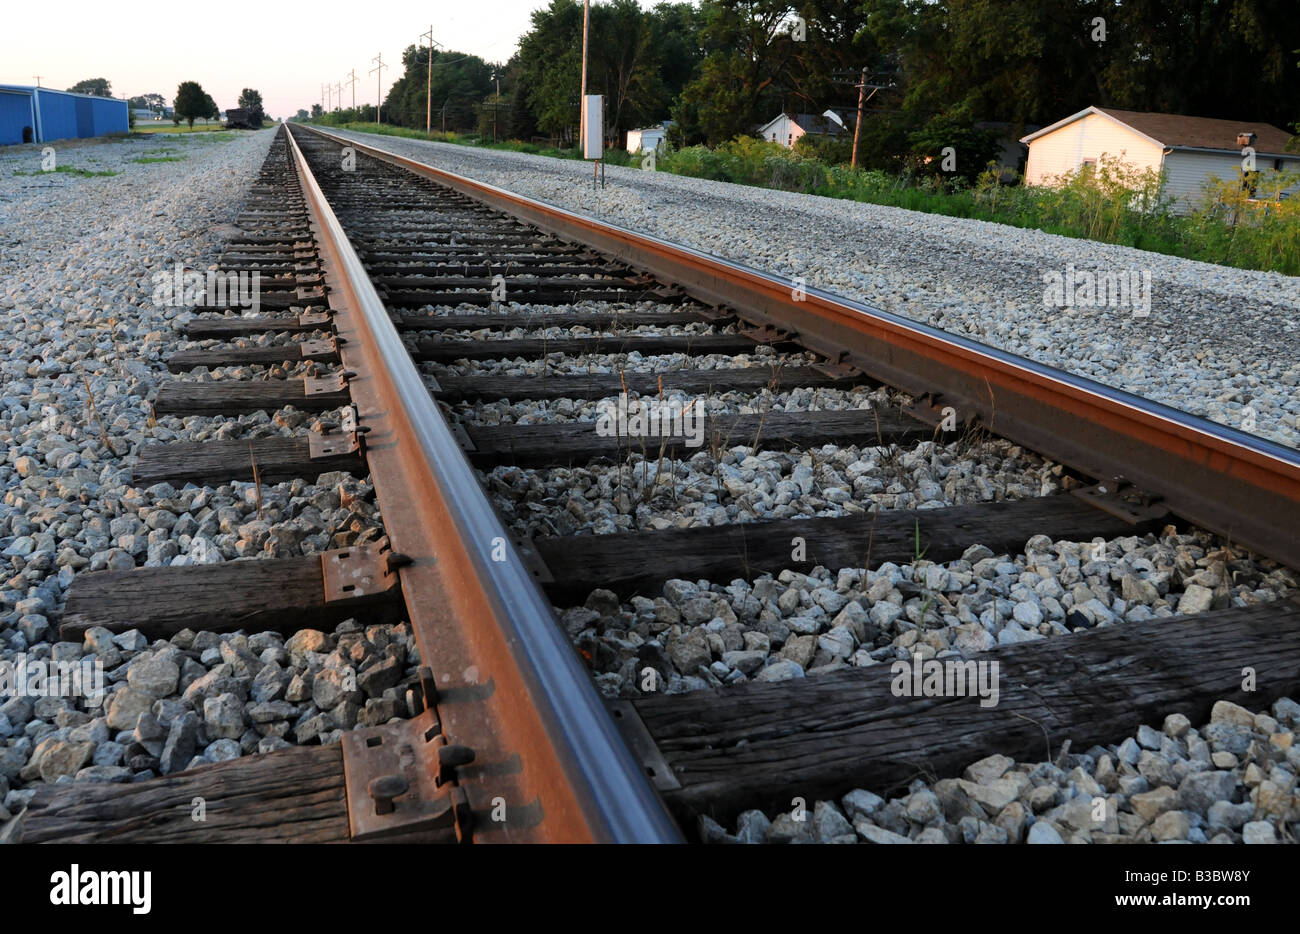 Railroad tracks in a small rural town - Stock Image